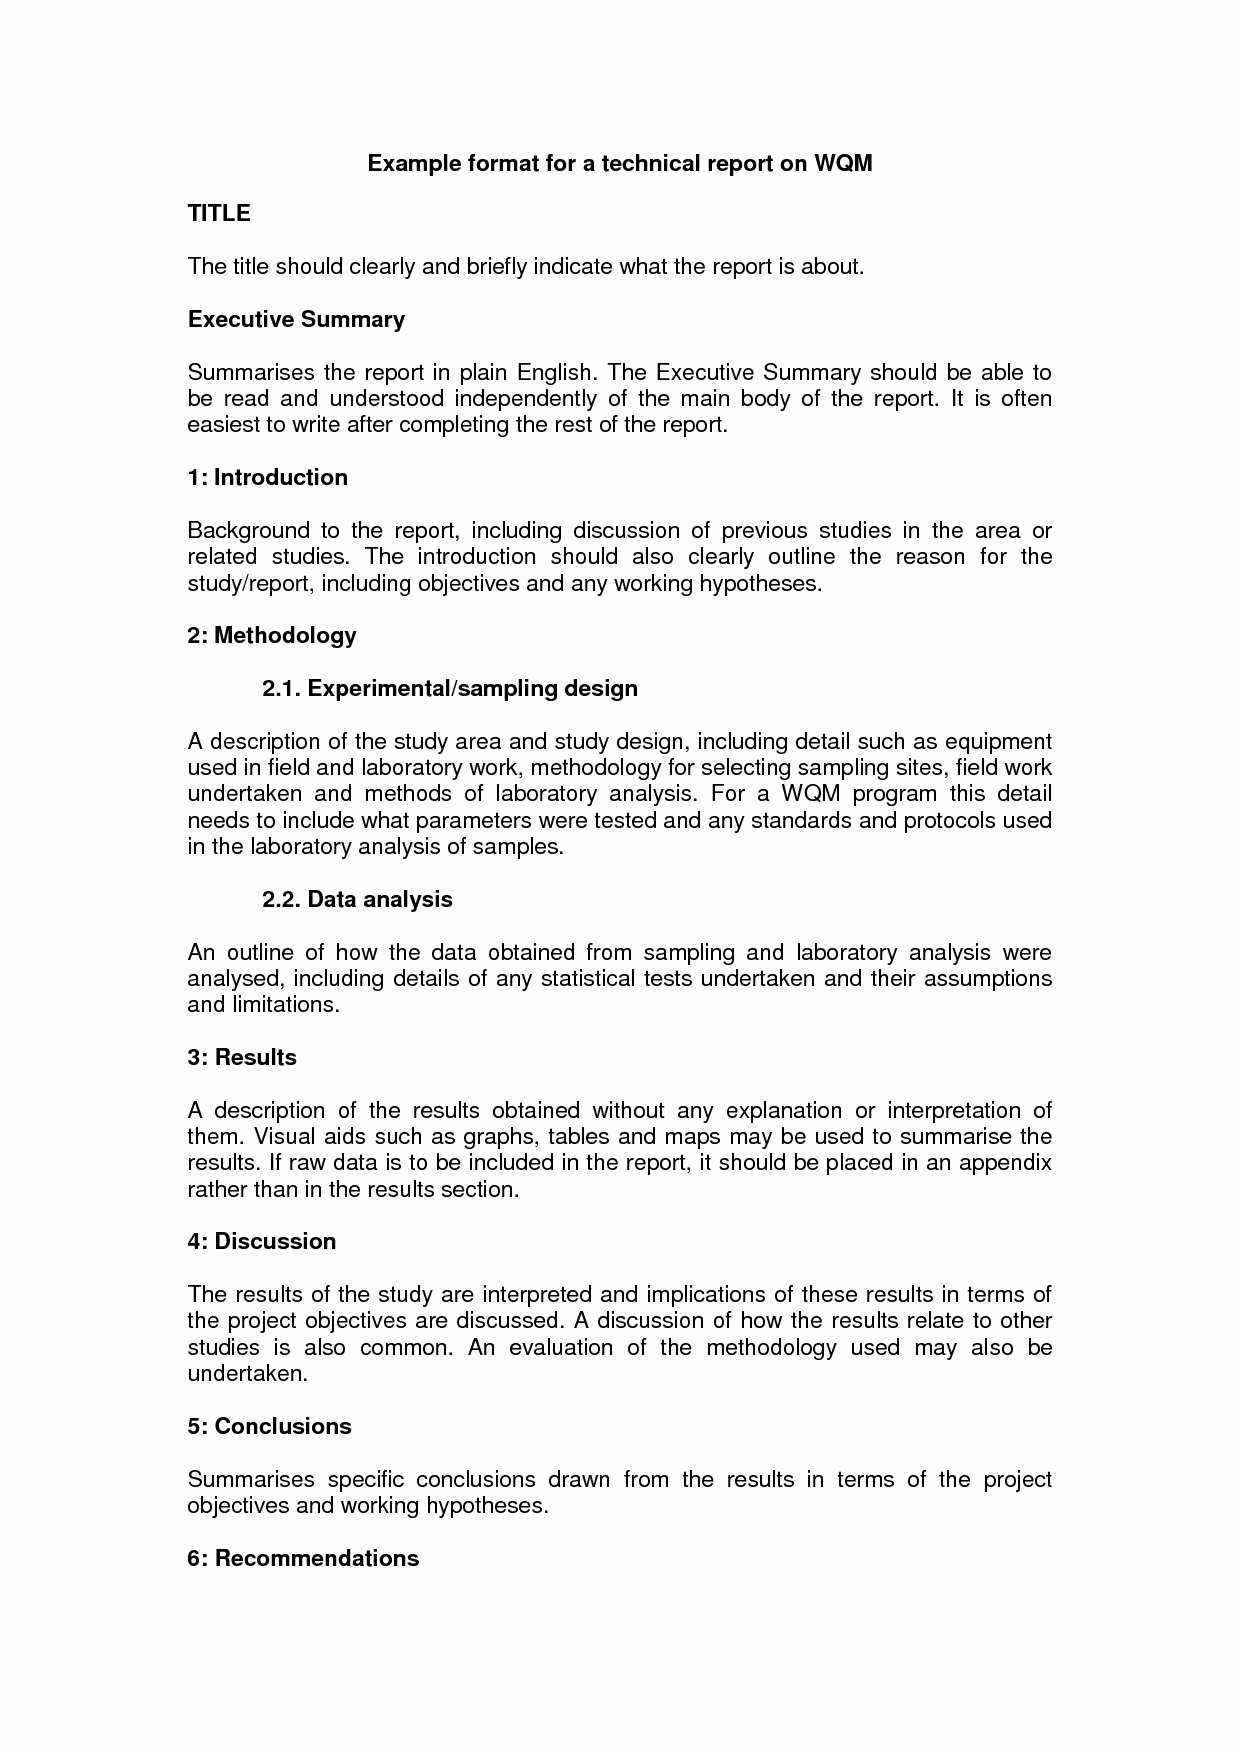 Engineering Technical Report Template Inspirational Technical Report Writing Sample form Template Example Doc